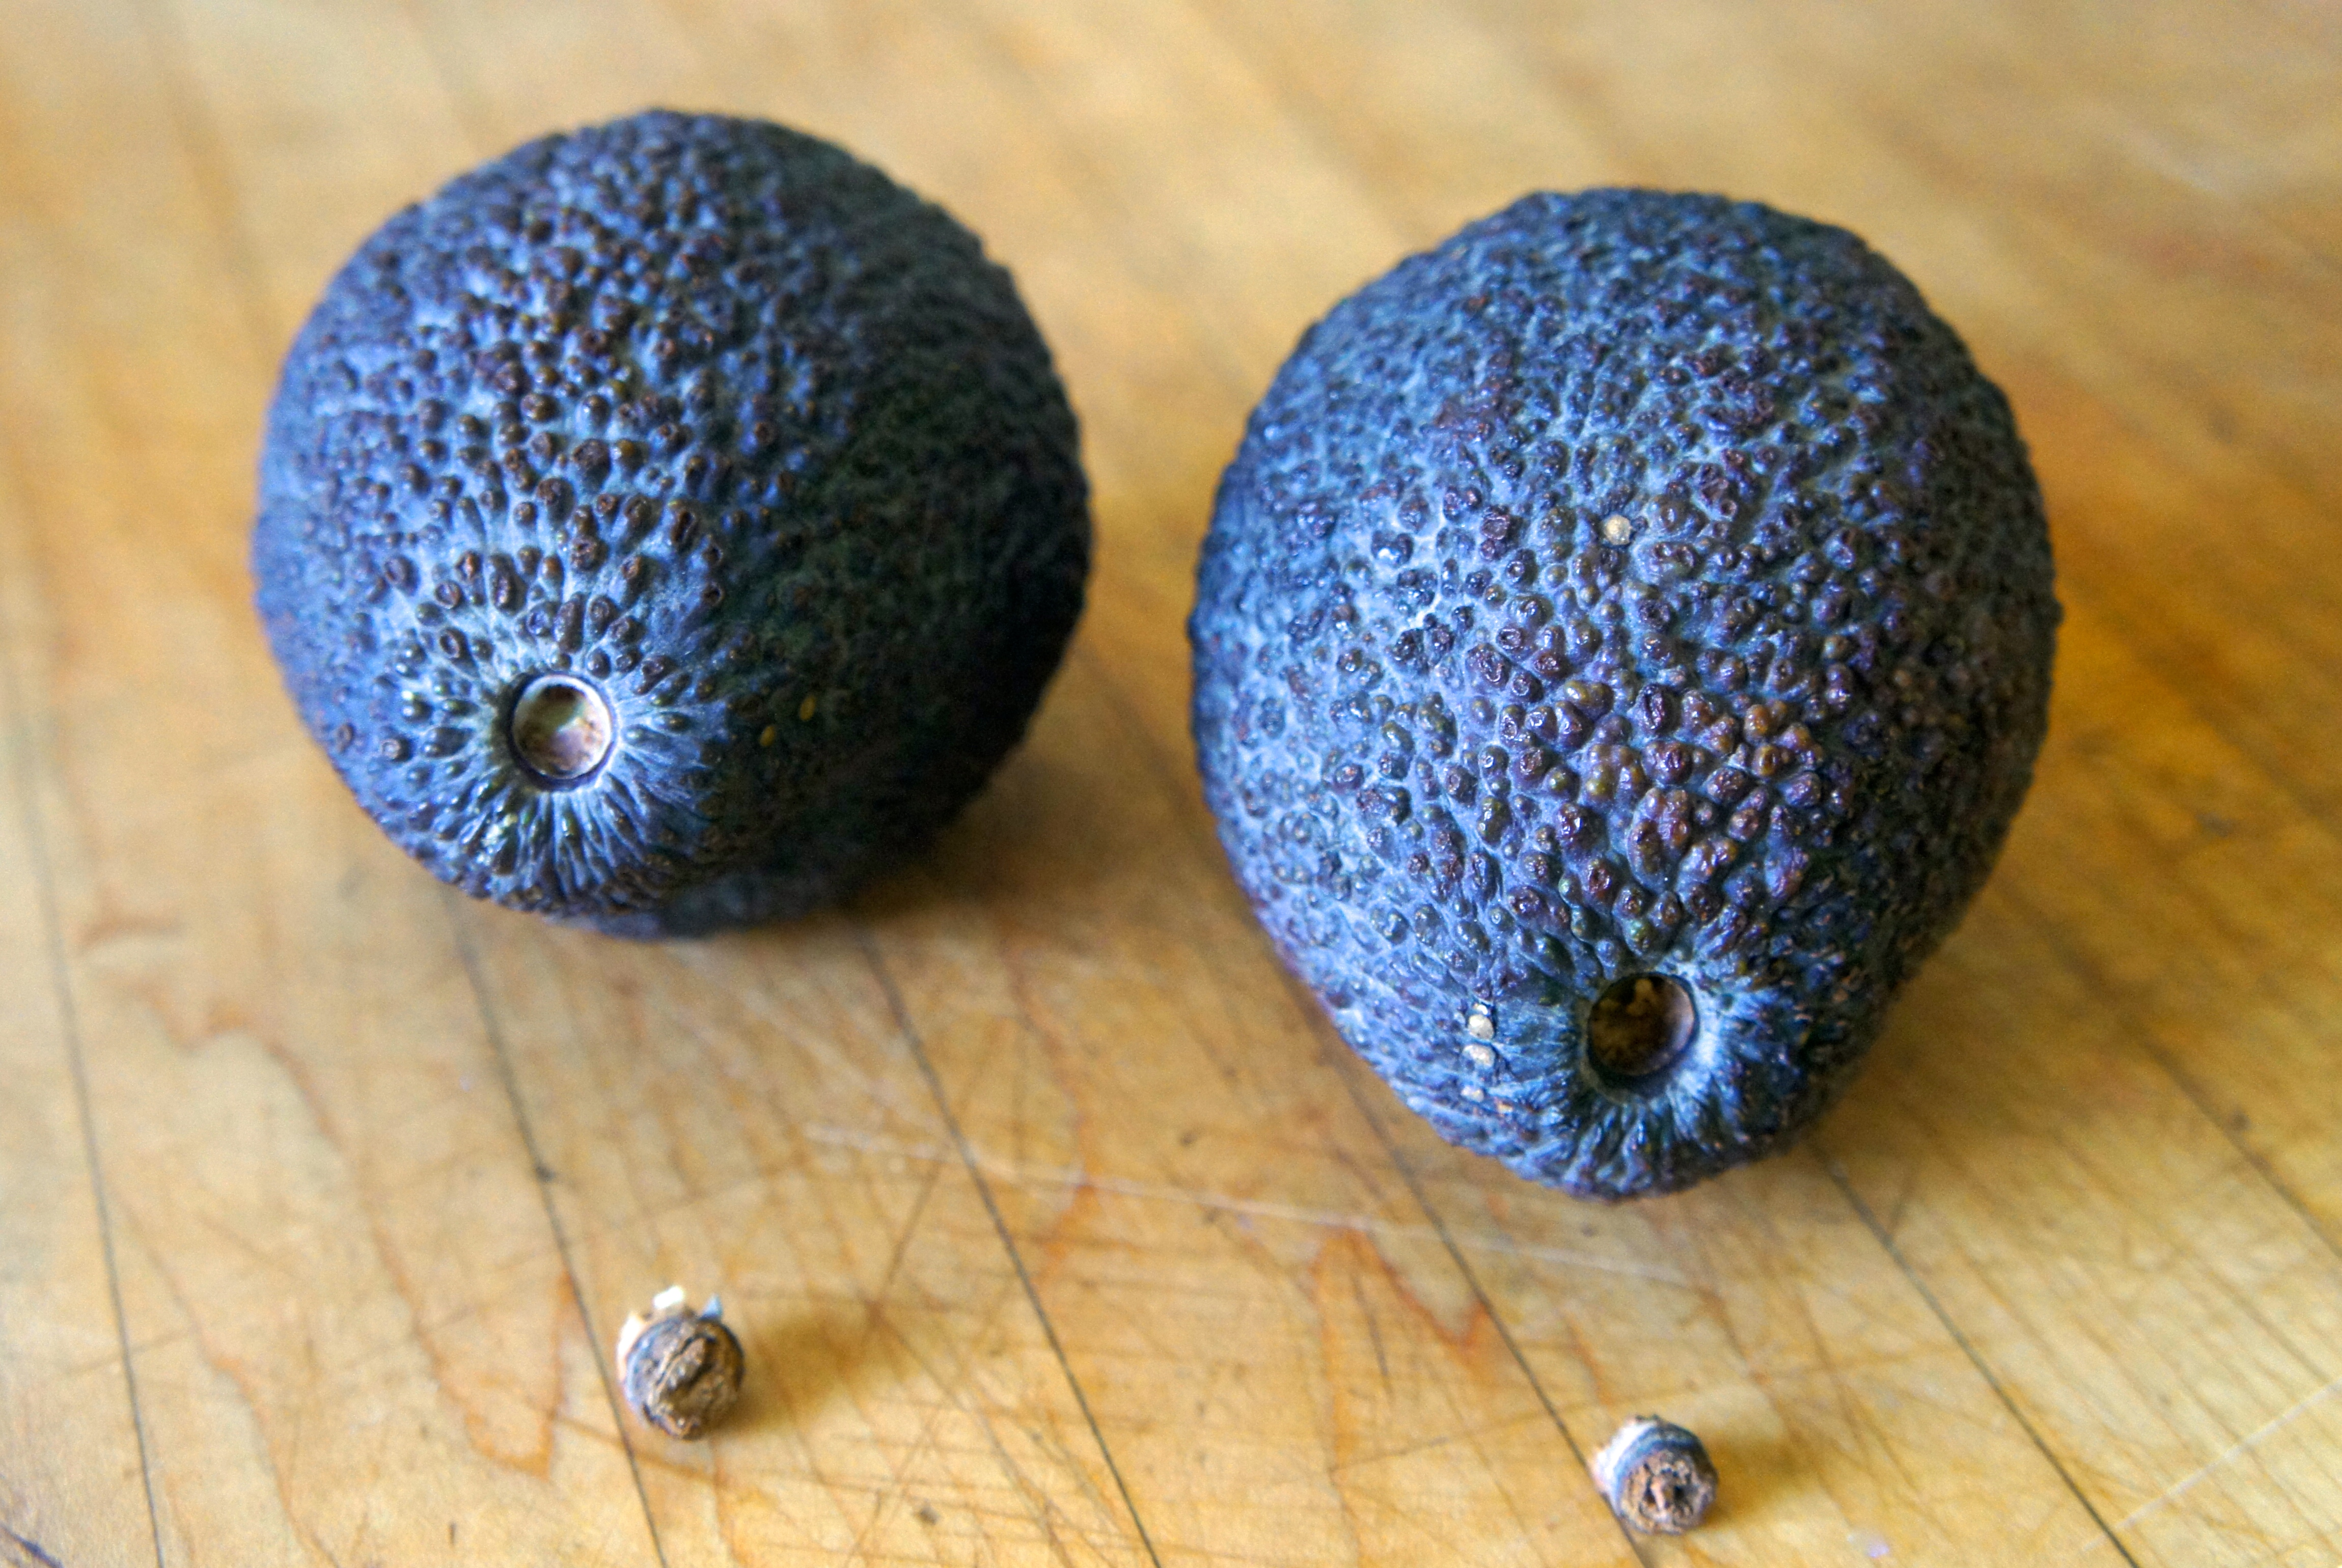 How can you tell if an avocado is rotten - answers.com